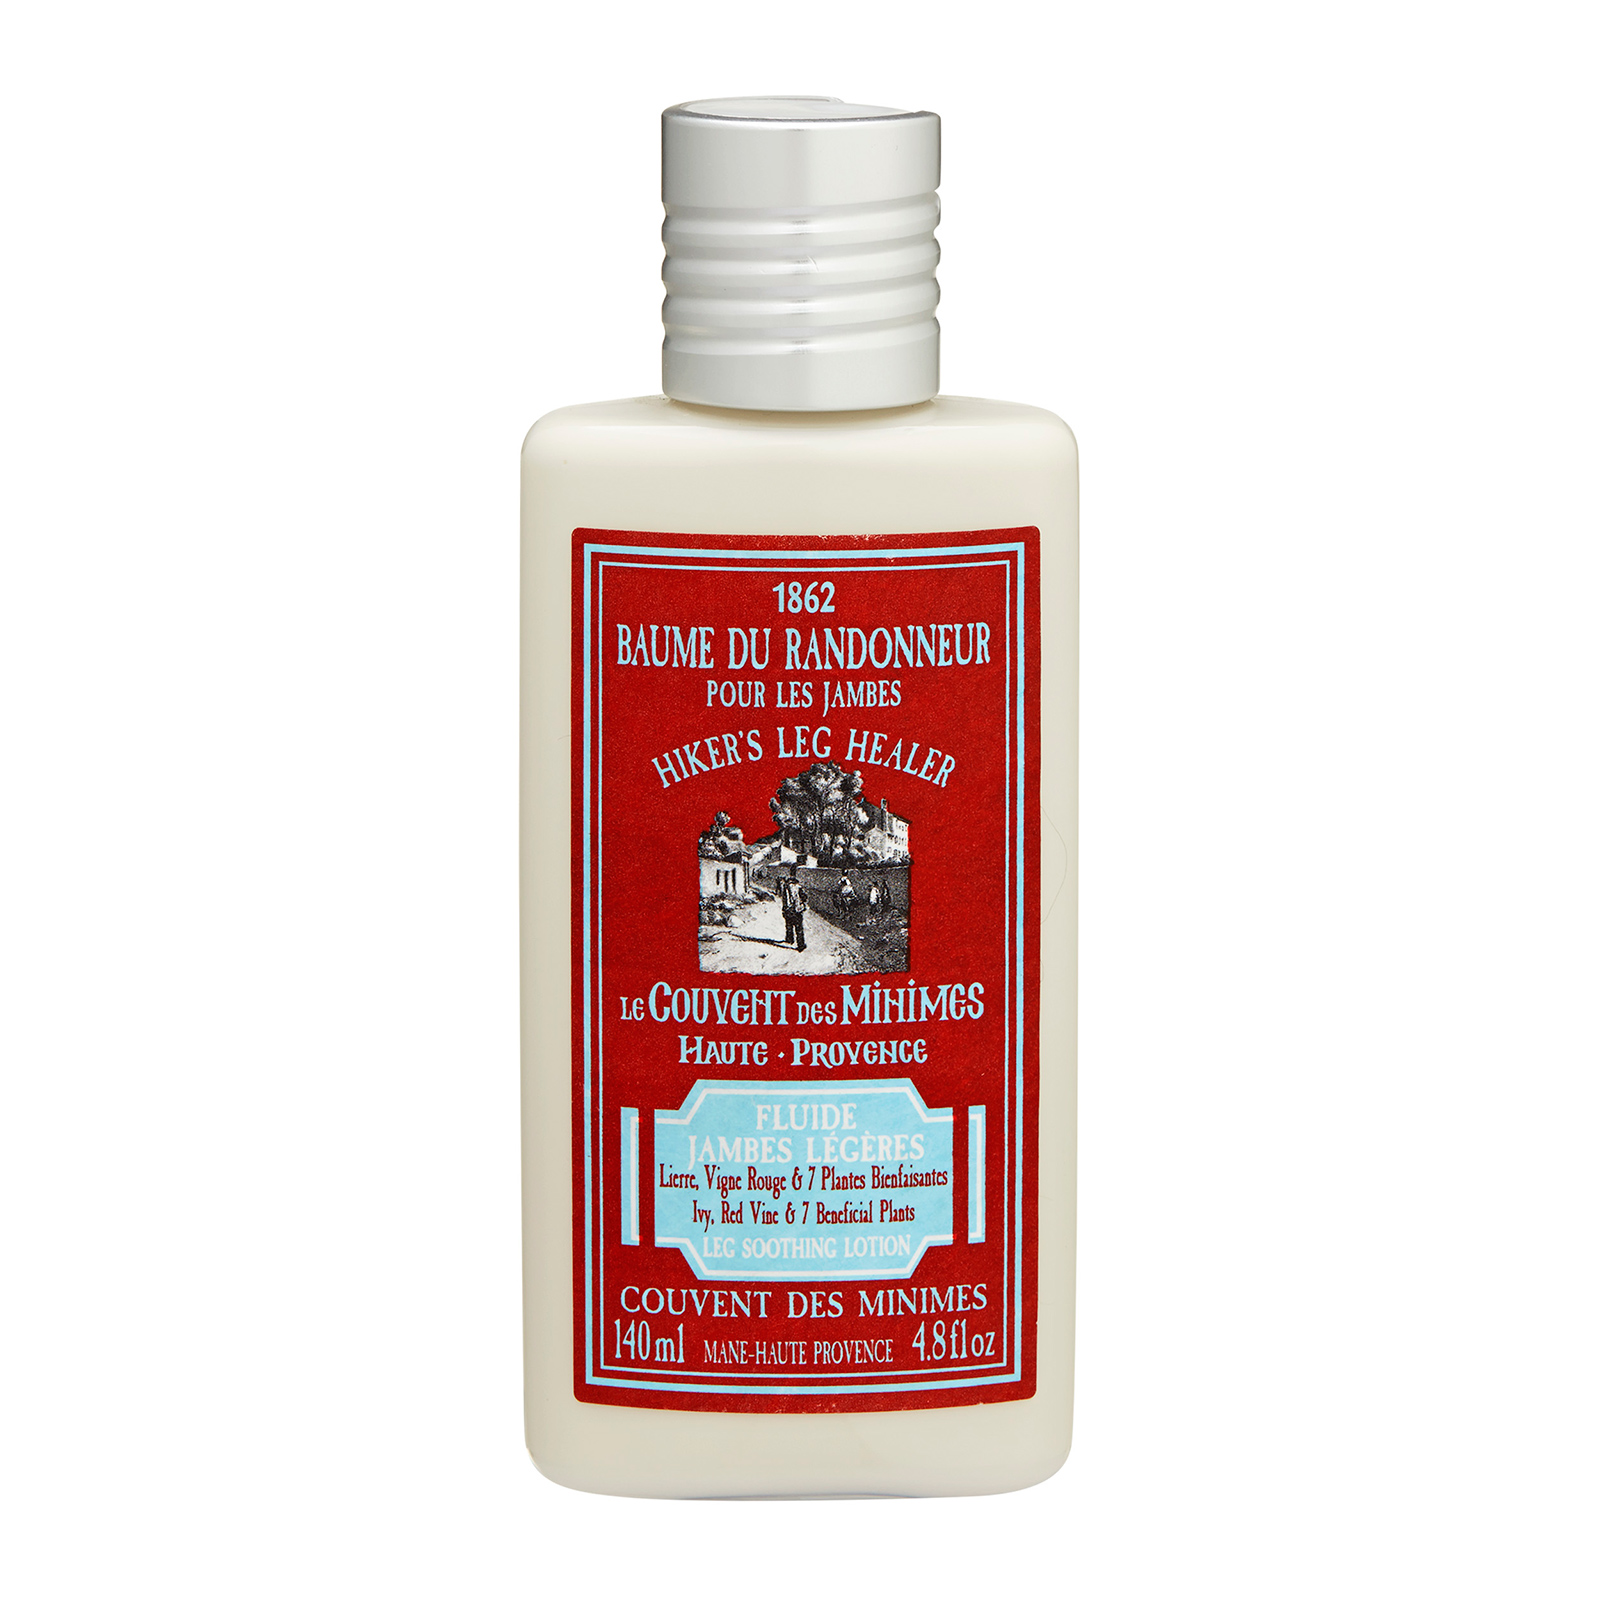 Le Couvent des Minimes Hiker's Leg Healer Leg Soothing Lotion 4.8oz, 140ml